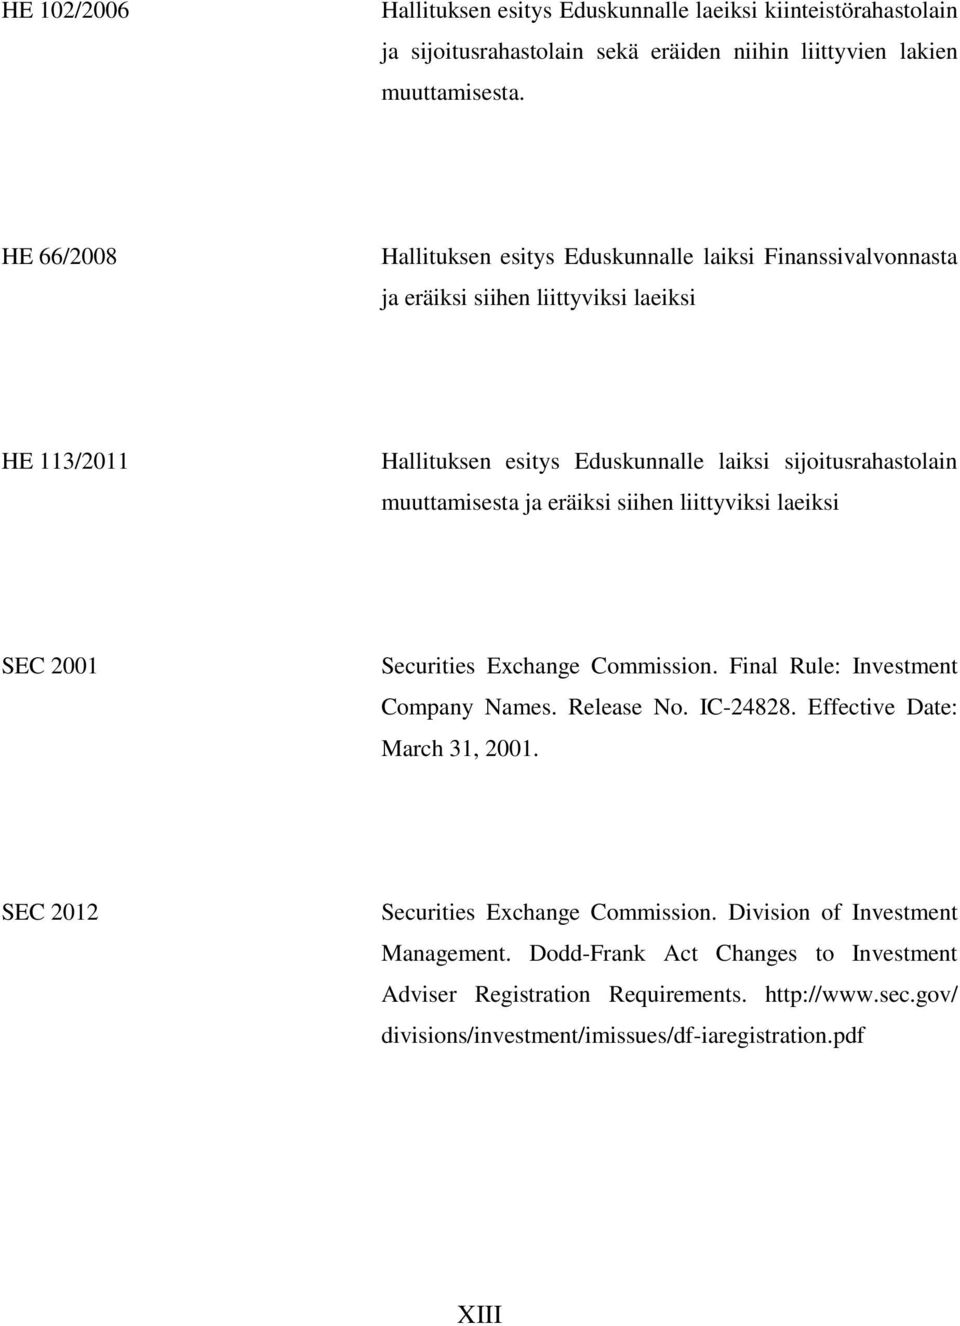 muuttamisesta ja eräiksi siihen liittyviksi laeiksi SEC 2001 Securities Exchange Commission. Final Rule: Investment Company Names. Release No. IC-24828. Effective Date: March 31, 2001.